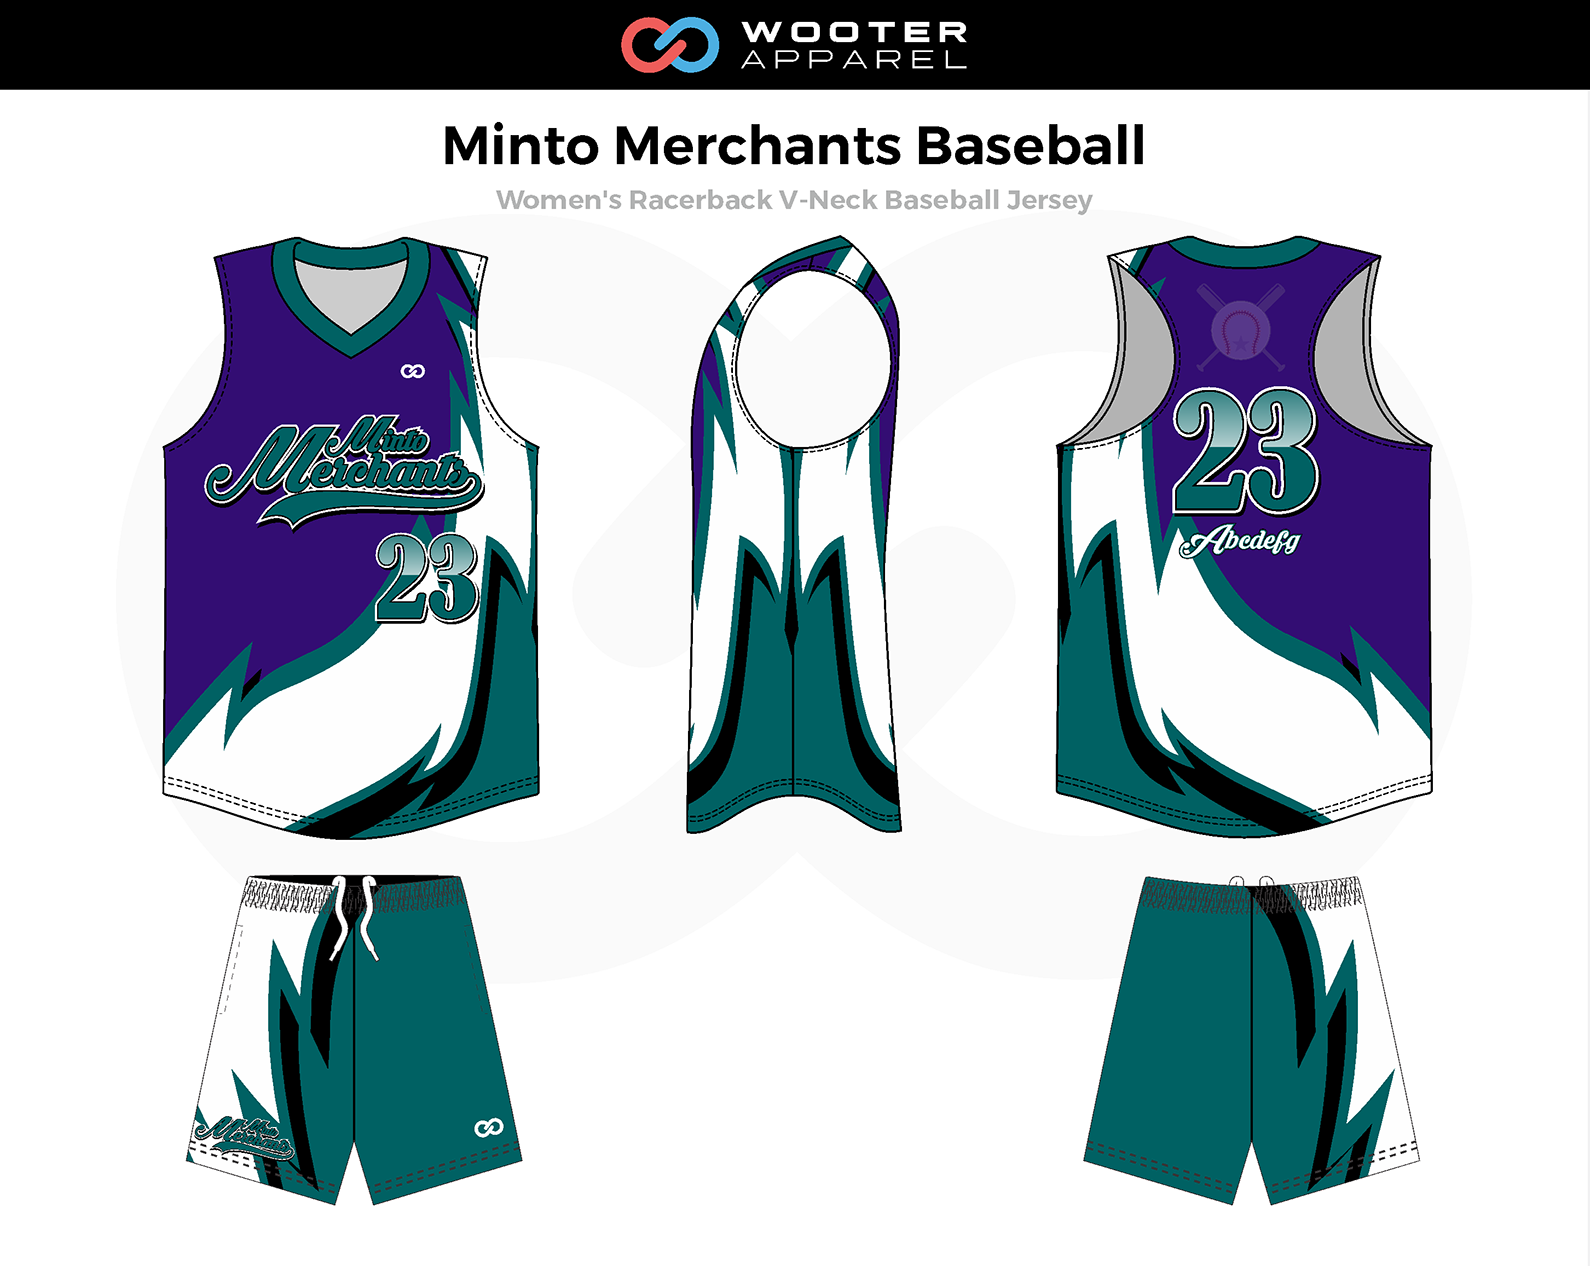 2018-08-29 Minto Merchants Baseball 4.png